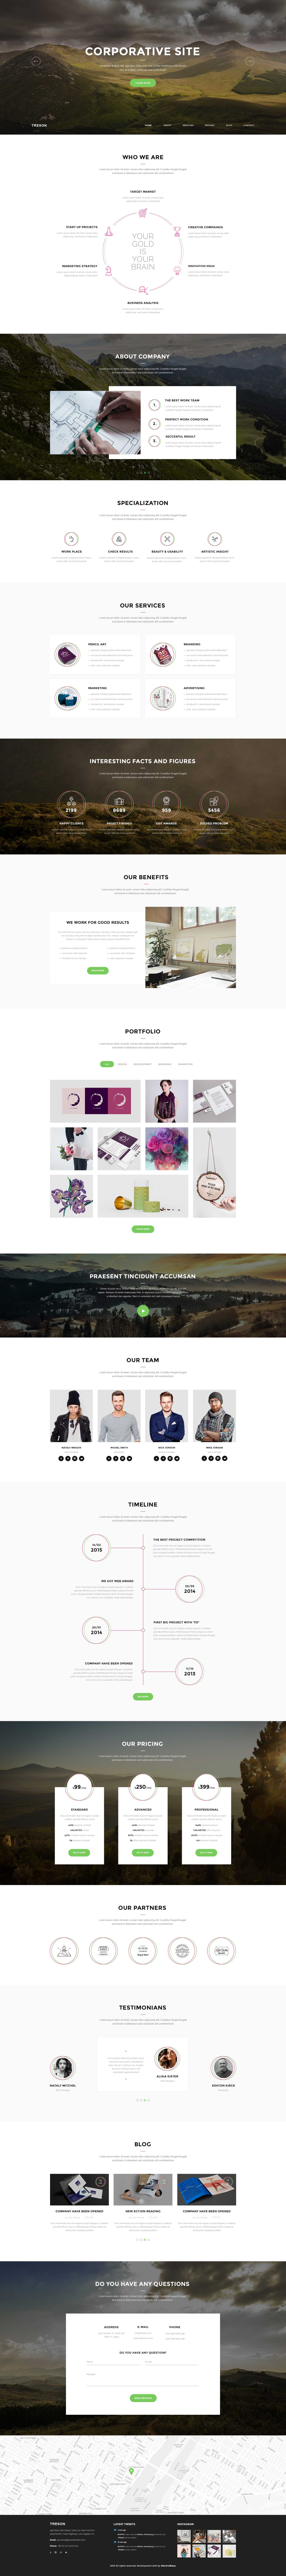 Treson - One Page Agency, App, Startup Responsive HTML Template by ...